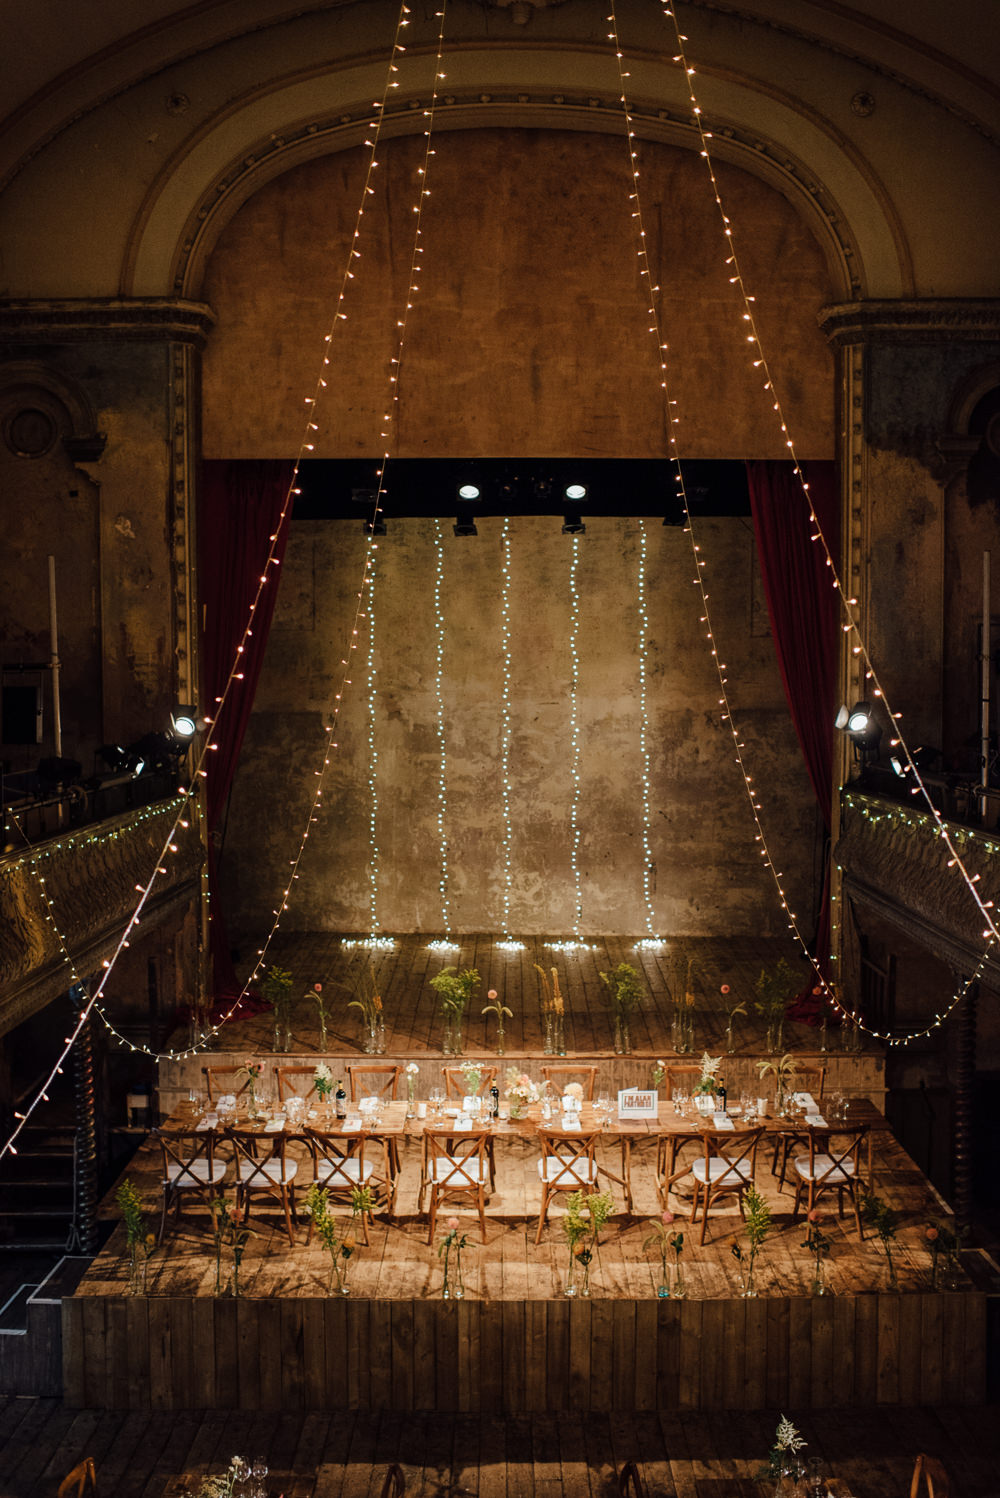 Long Tables Fairy Lights Decor Rustic Wooden Trestle Flowers Bottles Origami Cranes Wilton's Music Hall Wedding The Shannons Photography